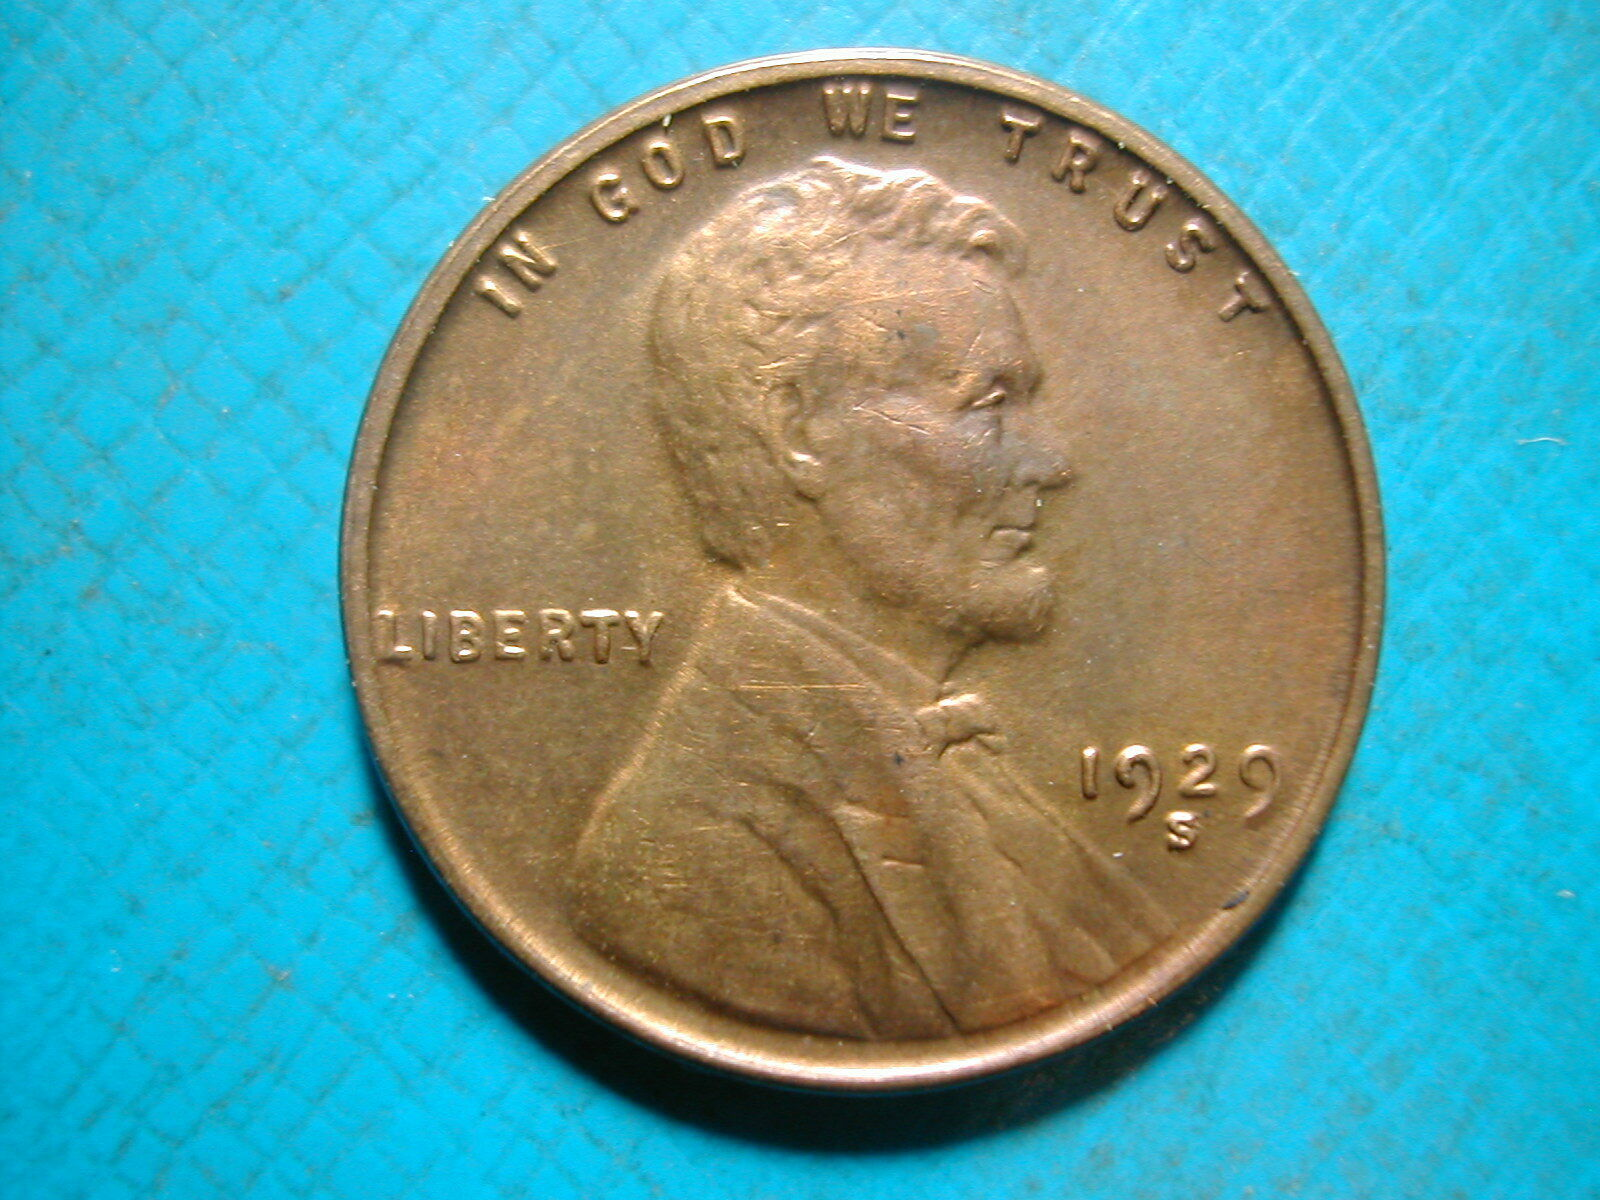 1938-P Lincoln Cent uncirculated